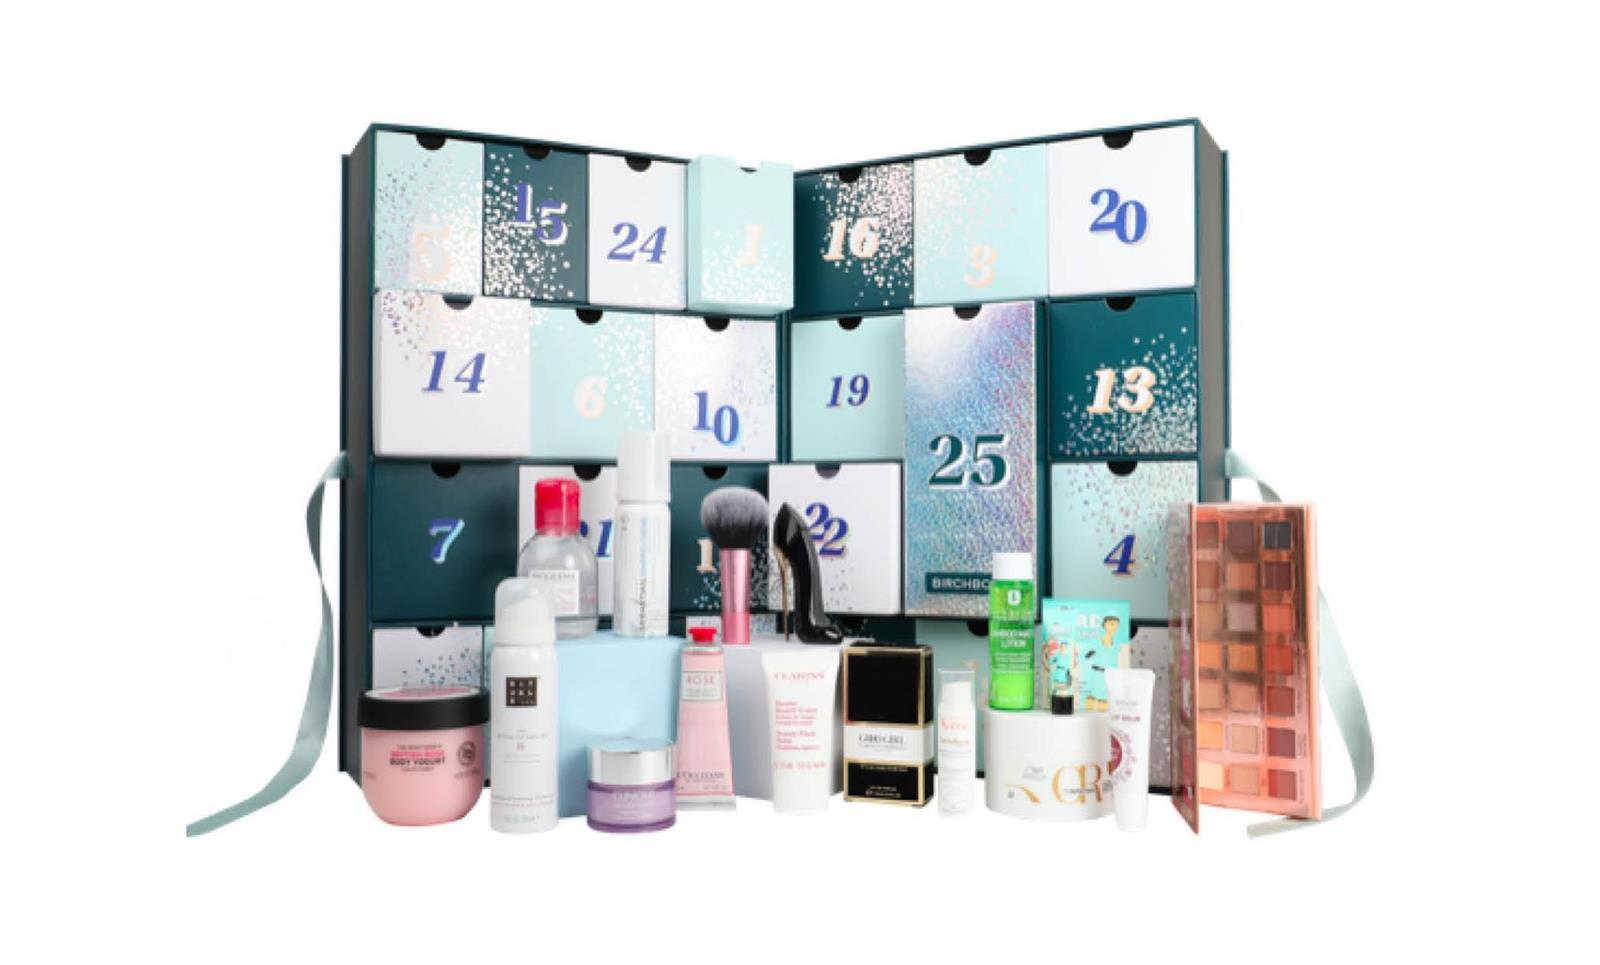 calendario de adviento 2019 birchbox. Calendario de adviento 2019 de Birchbox